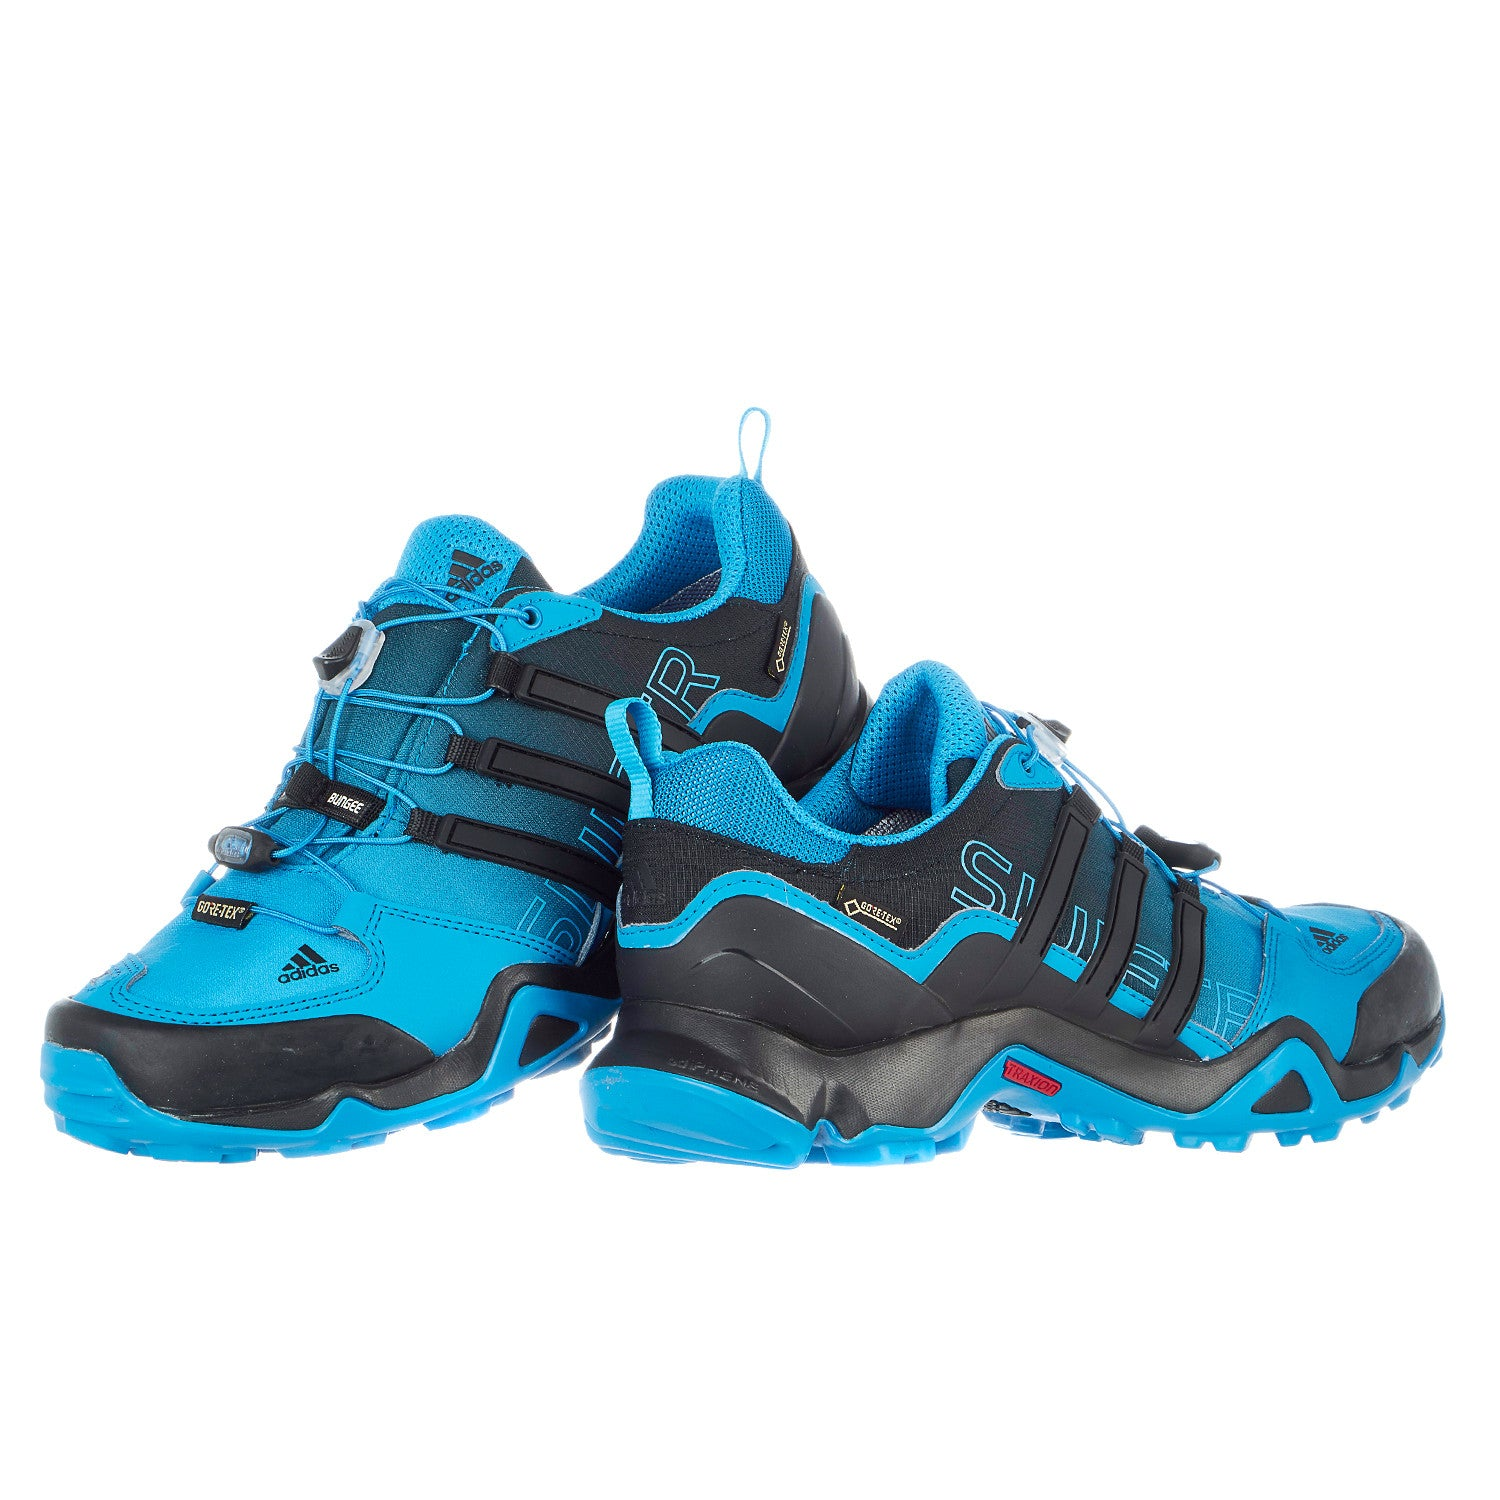 53e35847b8342 adidas Outdoor Terrex Swift R GTX® - Men s - Shoplifestyle